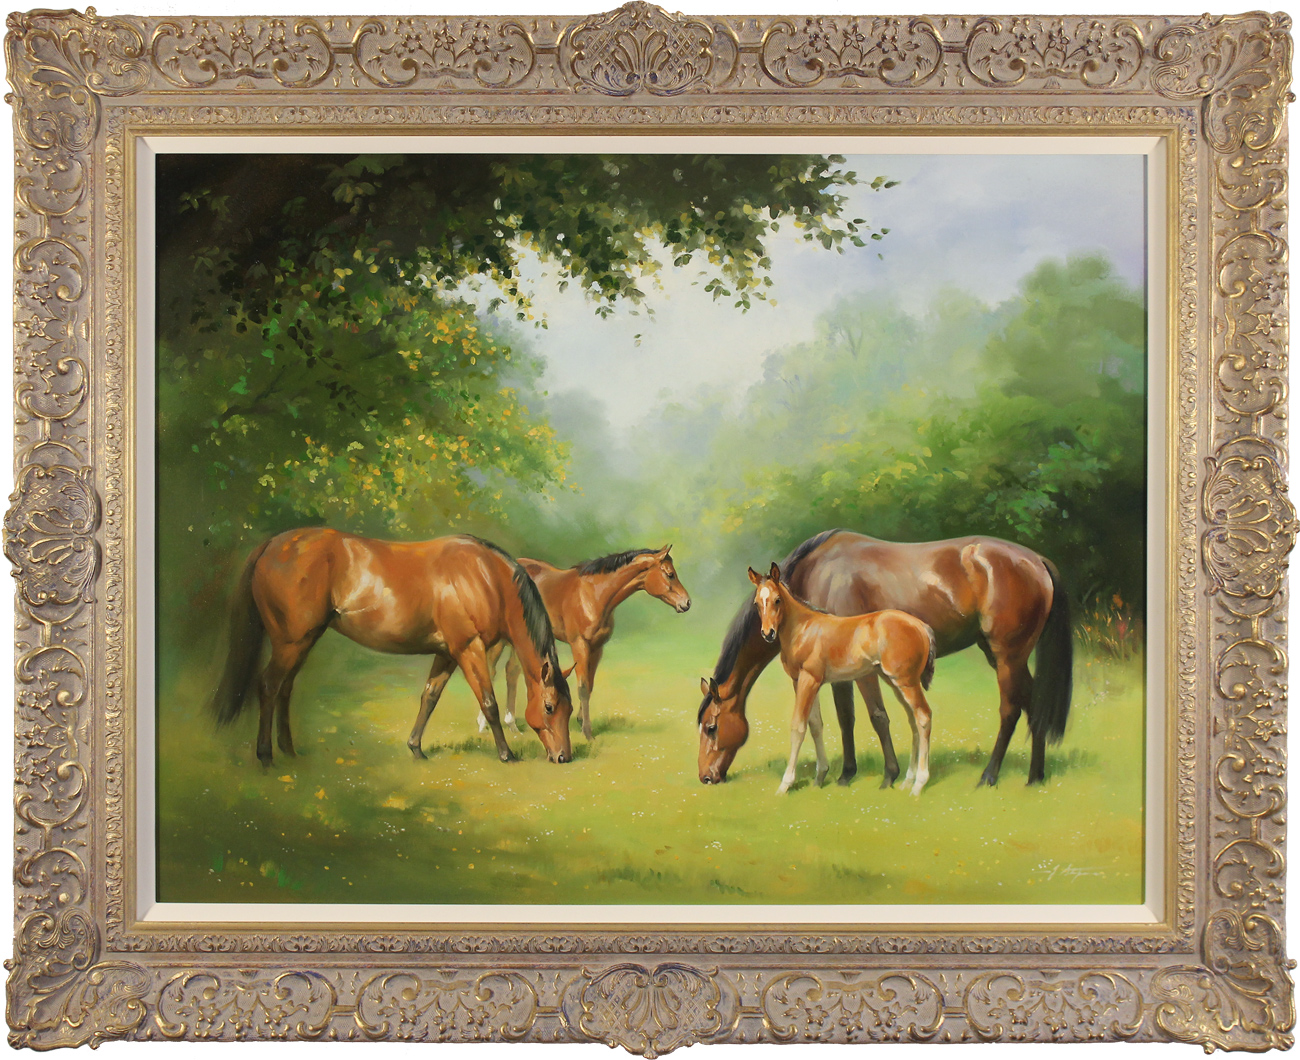 Jacqueline Stanhope, Original oil painting on canvas, Mares and Foals, click to enlarge